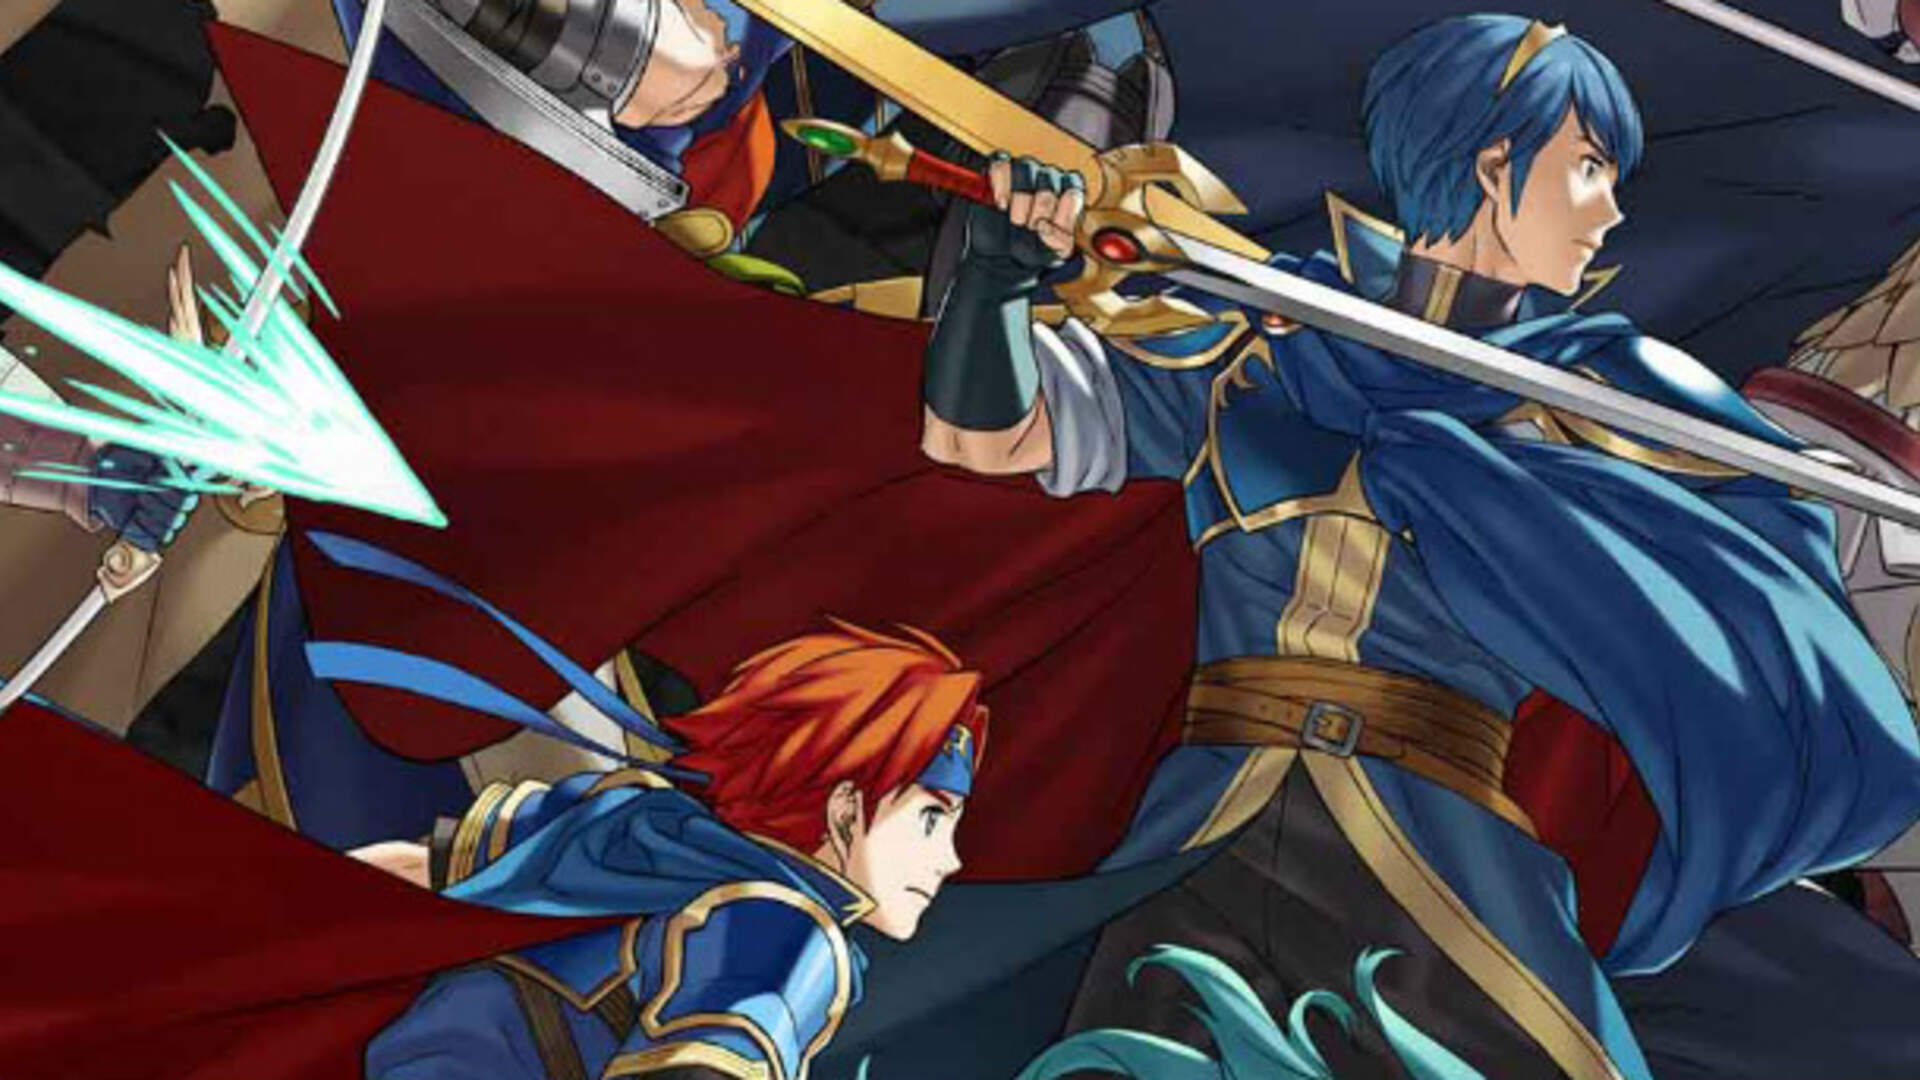 Fire Emblem Heroes Fan Favorites Poll Led By Ike, Roy, Lucina, Lyn, and Tharja